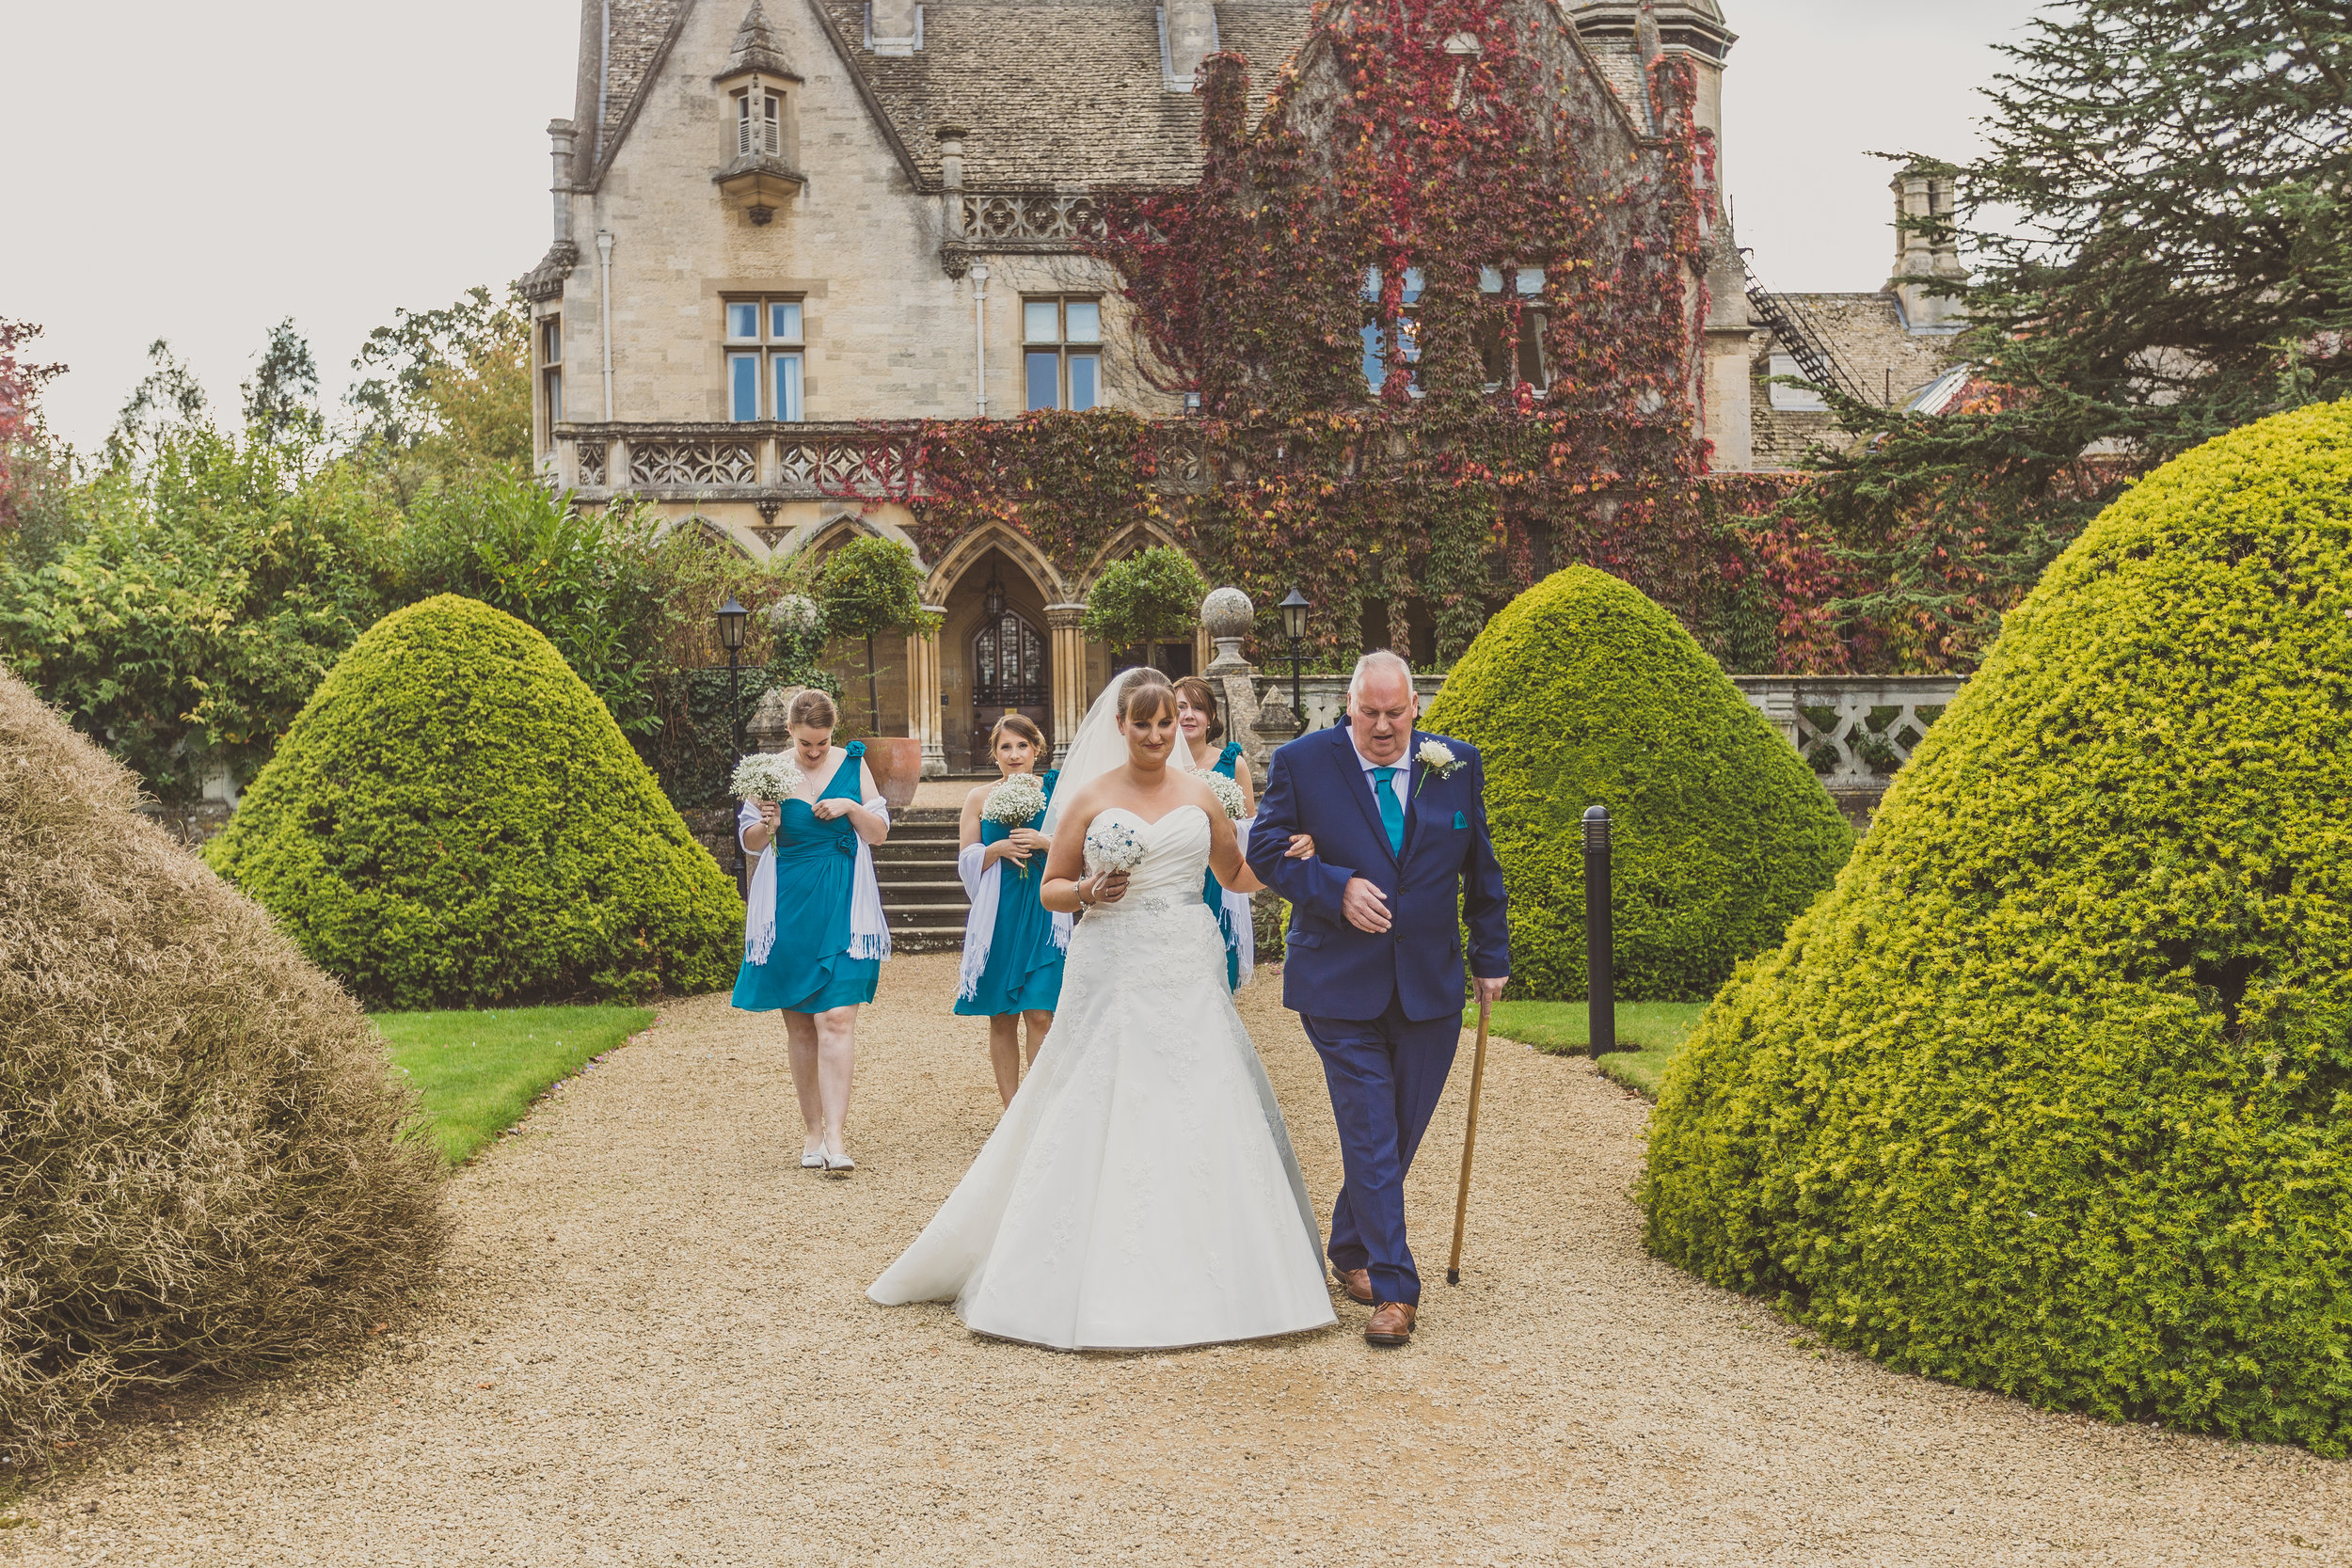 Becky & Ryans Wedding Photographs